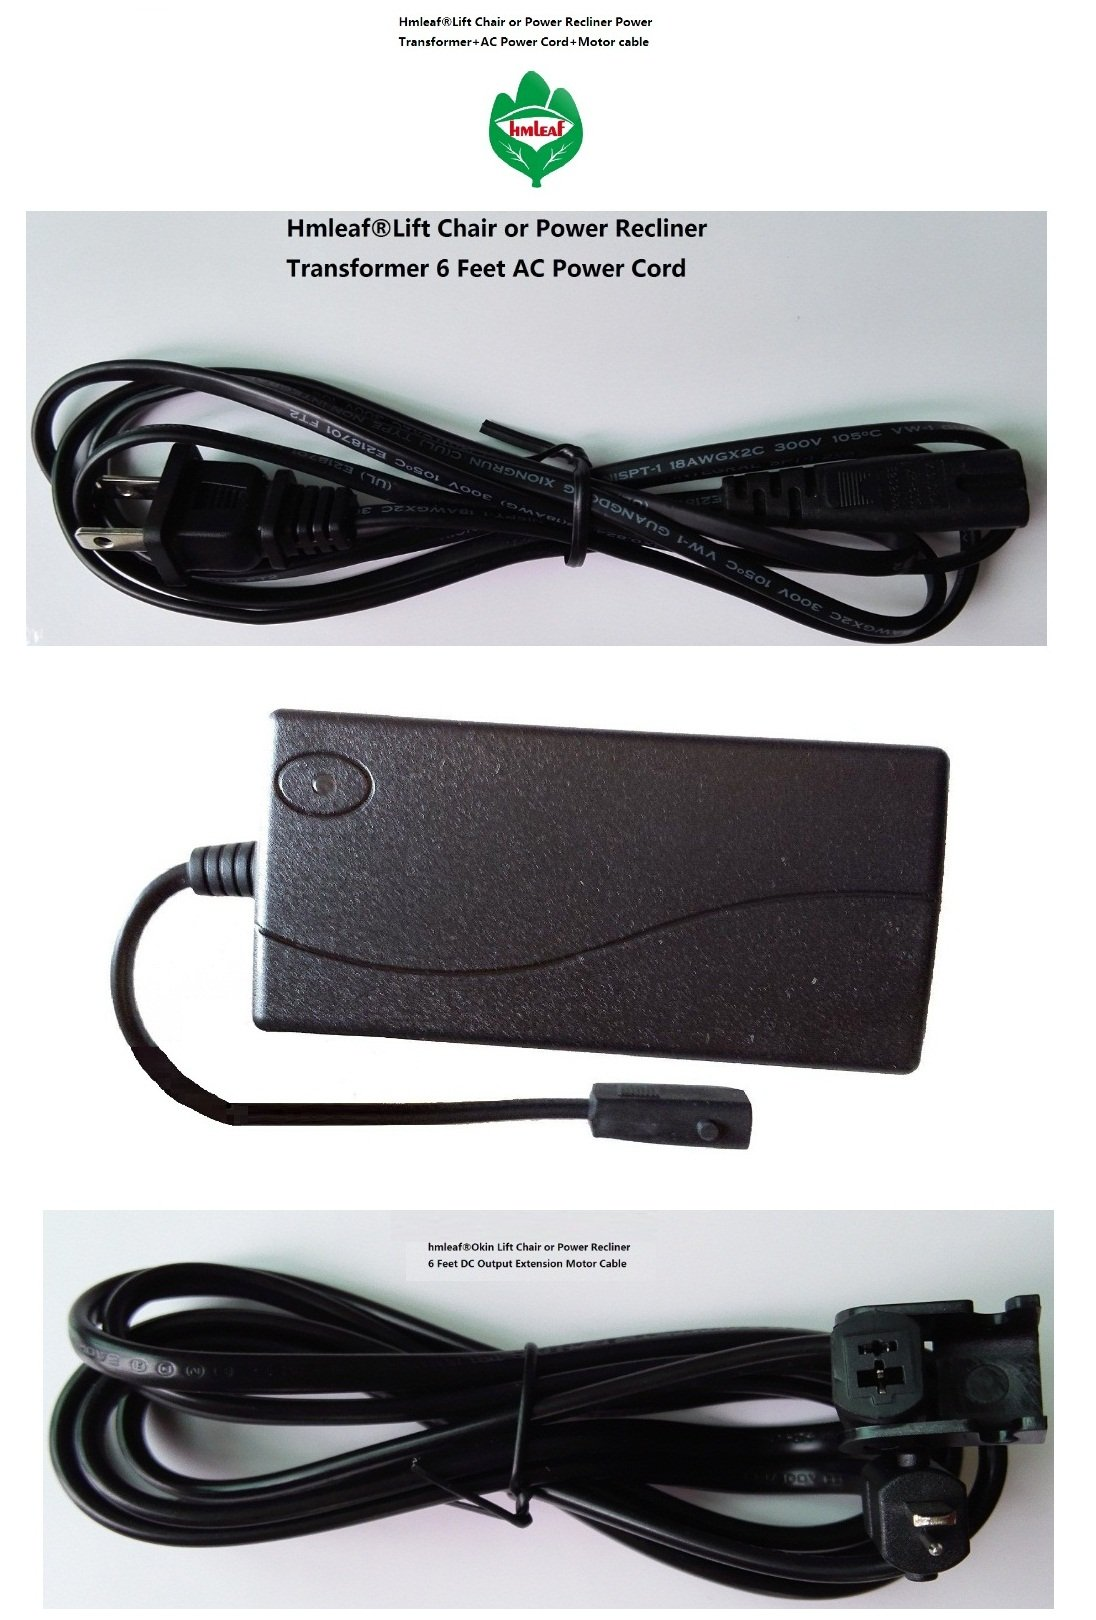 Hmleaf Lift Chair or Power Recliner Power Supply Transformer 29V 2A+6 feet Power cord+Motor Cable